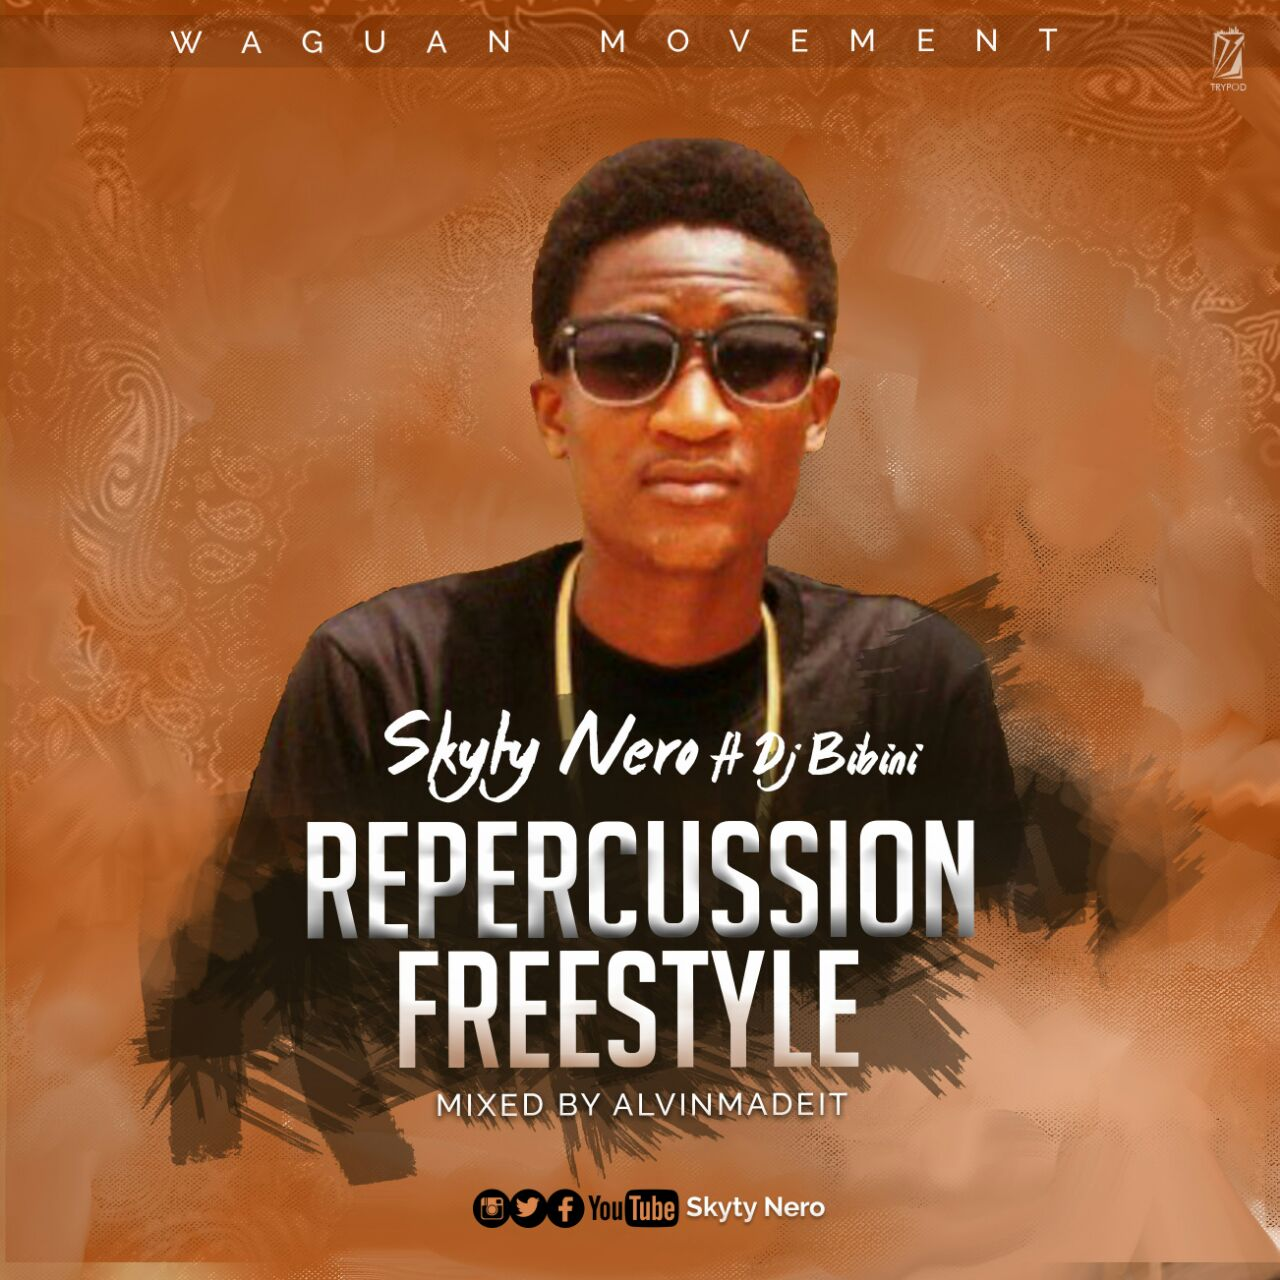 Skyty Nero – Repercussions Freestyle Ft Dj Bibini (Mixed by Alvinmadeit)